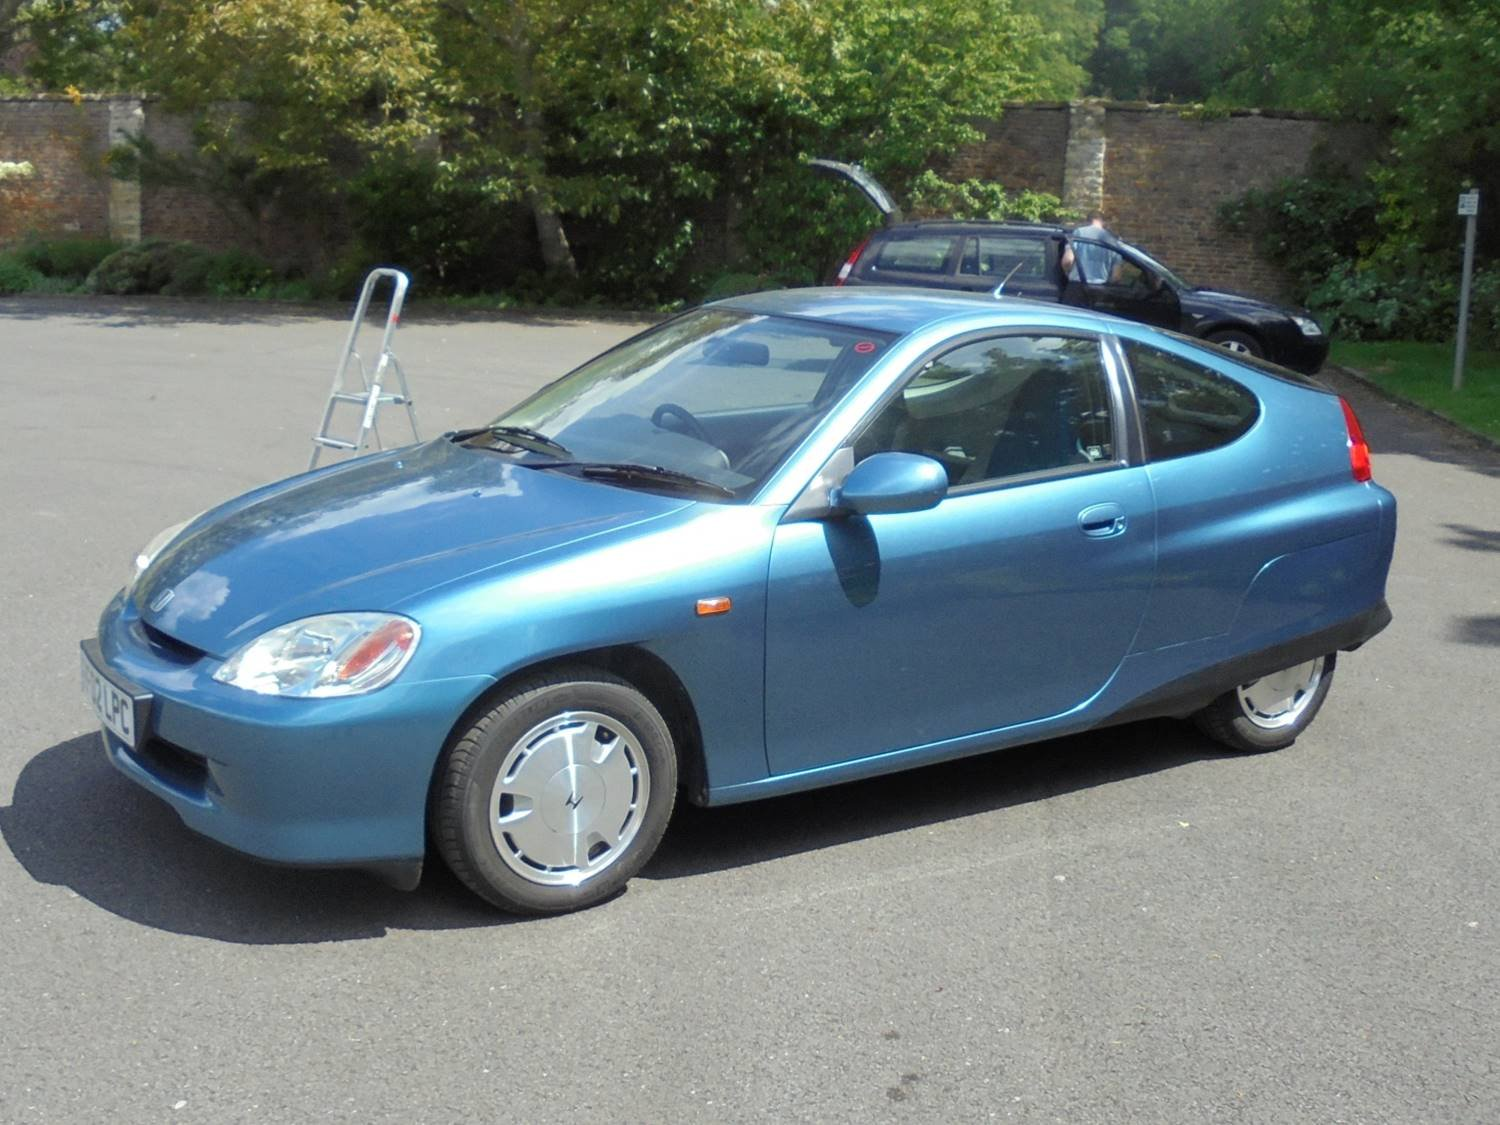 Honda Insight Ze 1 2002 Hybrid Blue For Sale (picture 2 of 6)